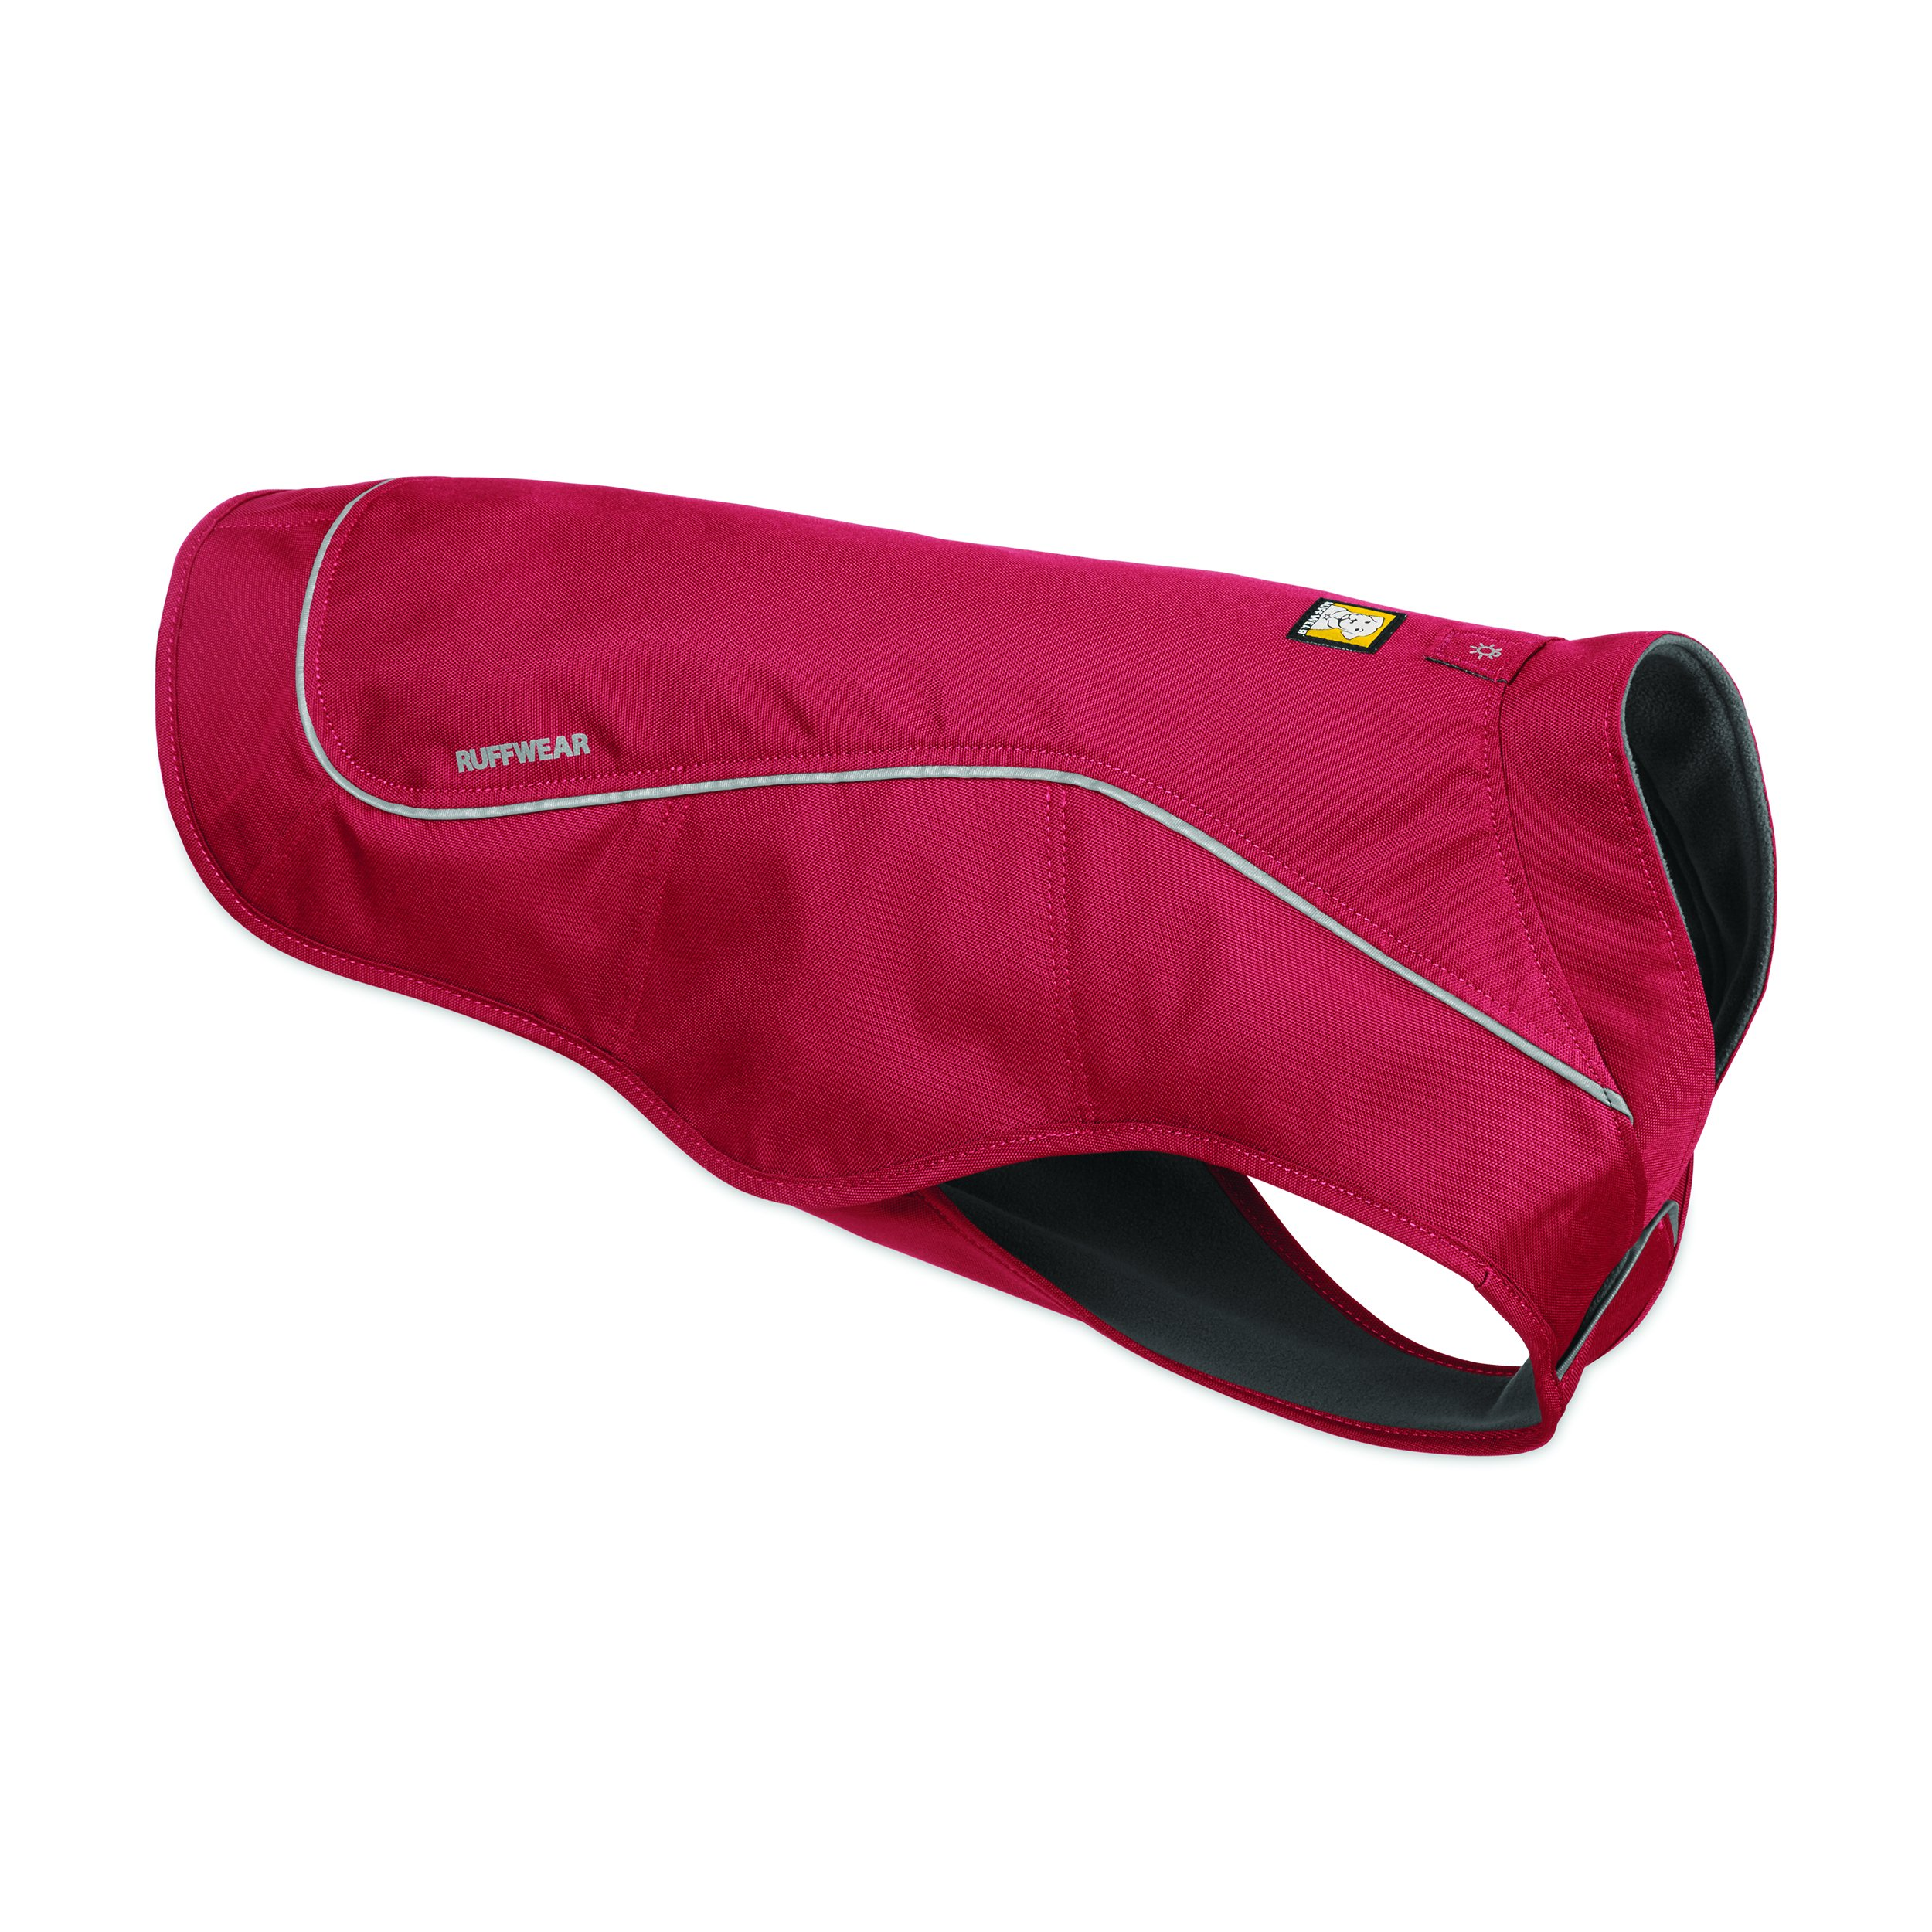 RUFFWEAR - Overcoat Insulated Dog Jacket for Cold Weather, Cinder Cone Red (2017), Small